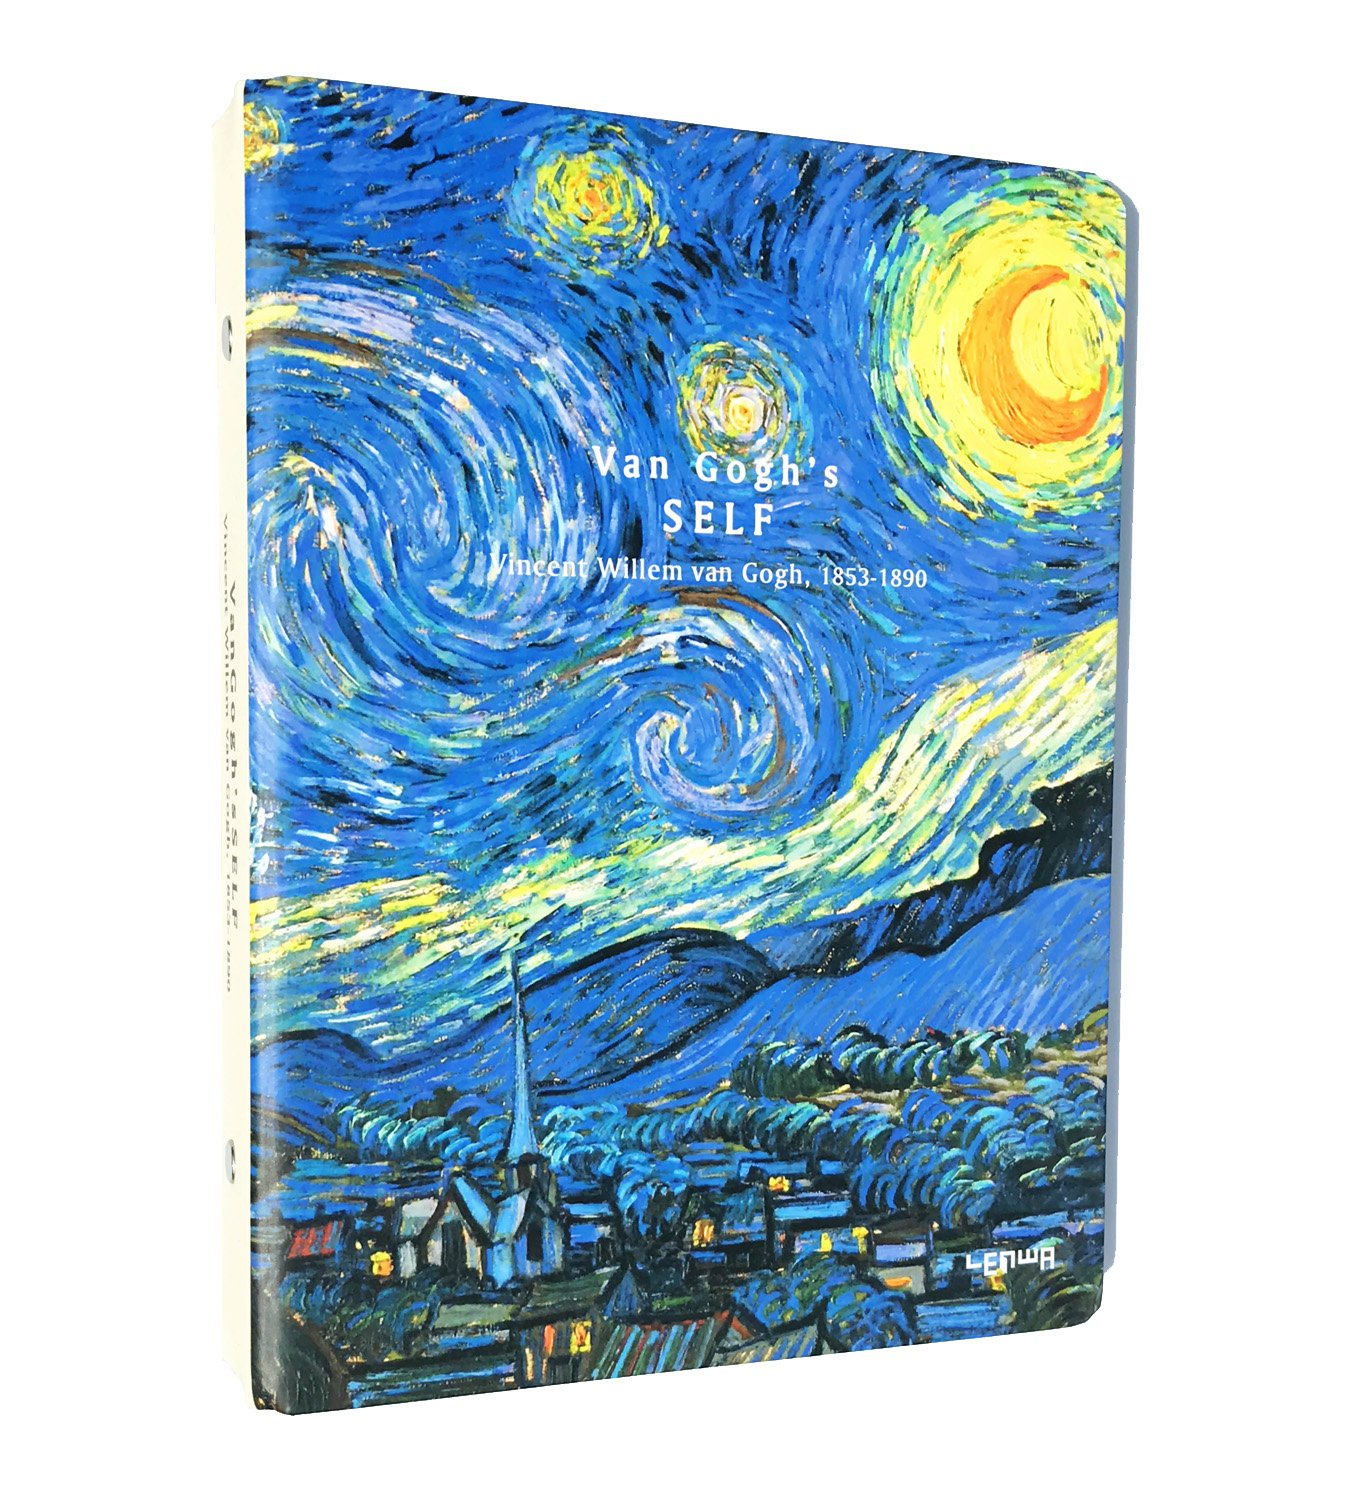 Siixu Van Gogh Spiral Notebook for Men & Woman, Refillable Bullet Journal, College Ruled, 80 Sheets